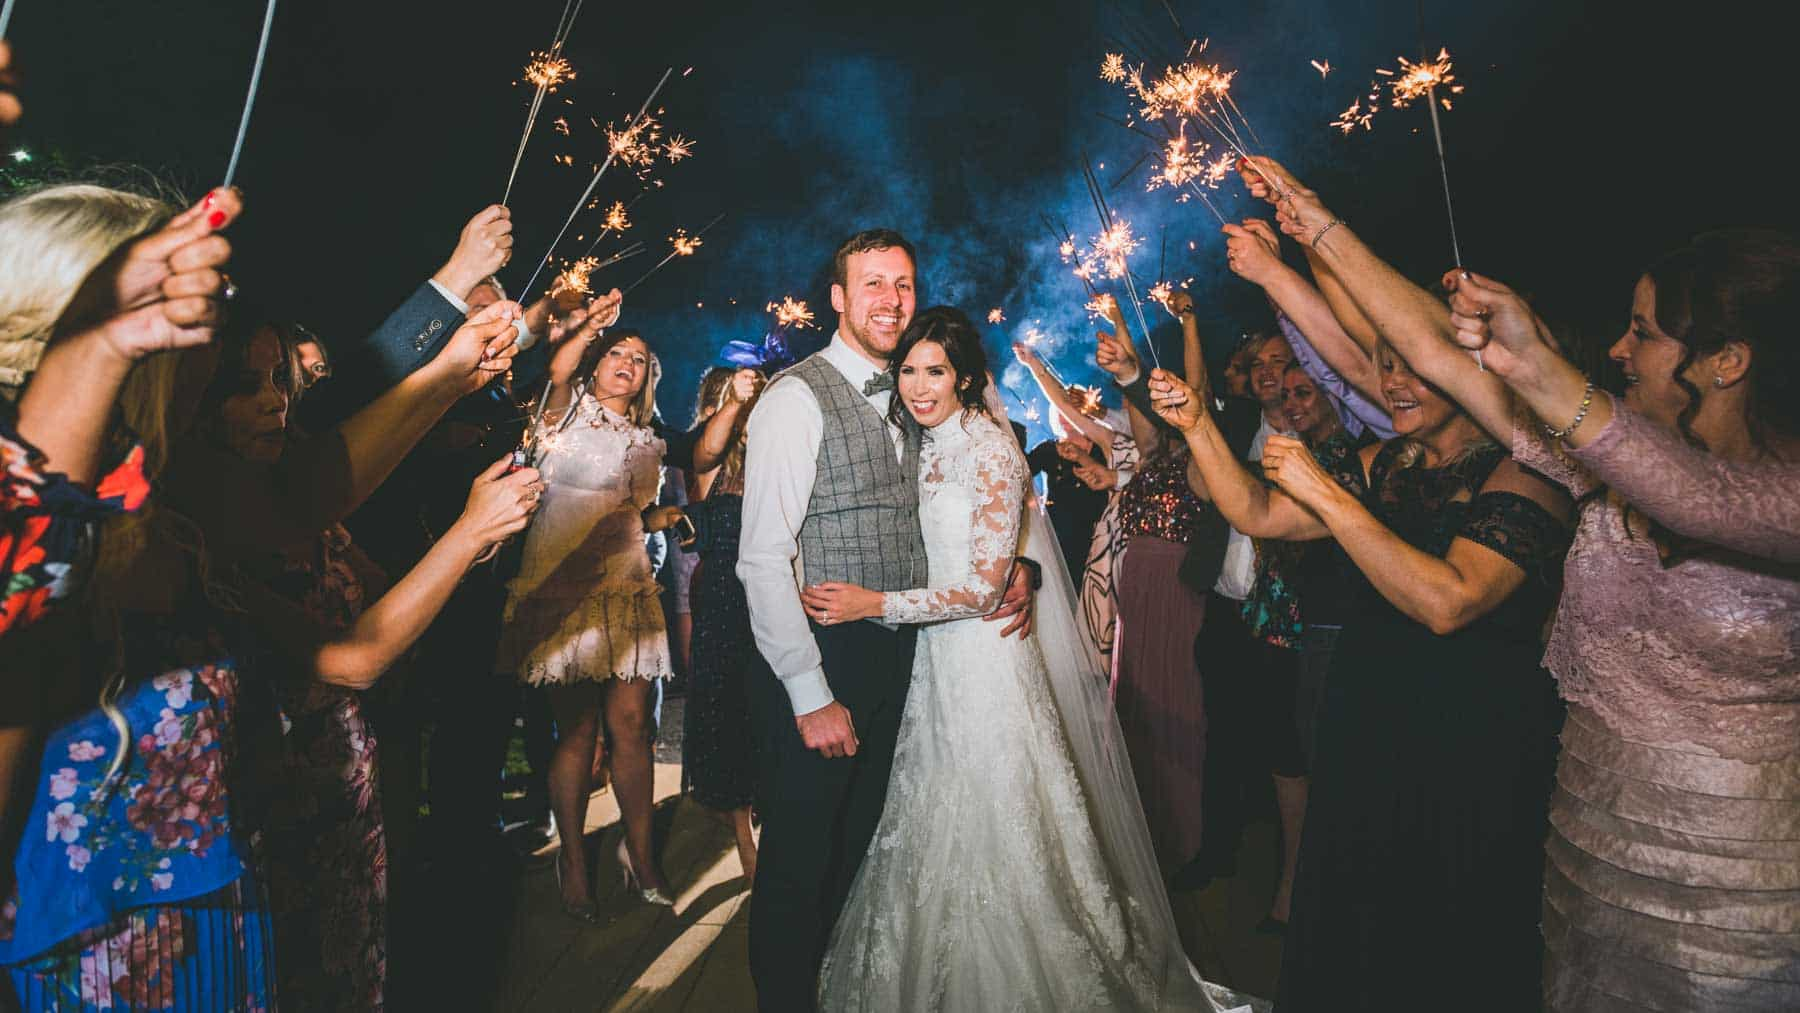 Cardiff-wedding-photographers-videographers-south-wales-couple-at-decourceys-with-sparklers